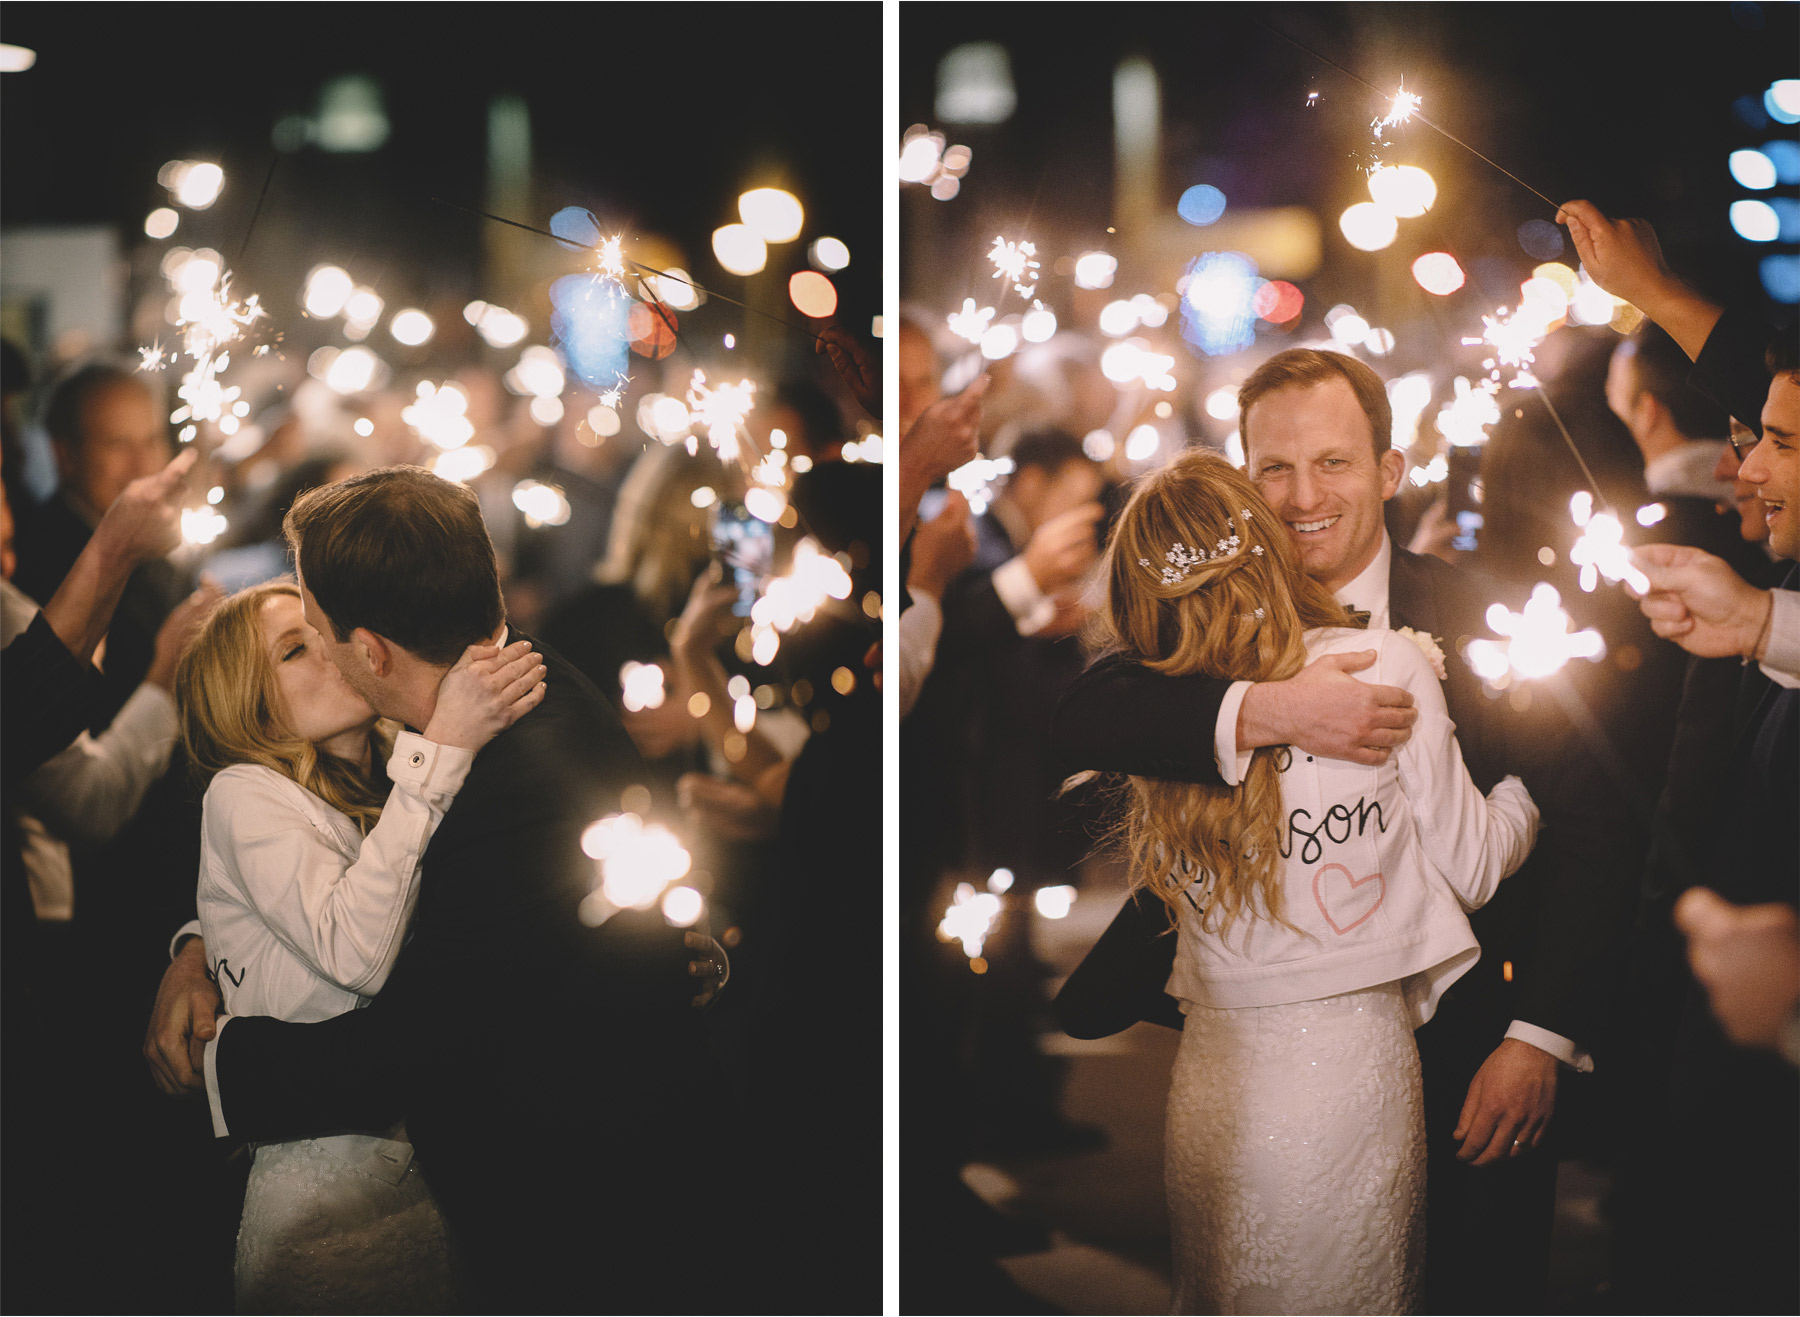 22-Minneapolis-Minnesota-Wedding-Photographer-by-Vick-Photography--Sparkler-Send-Off-Reception-Machine-Shop-Alyssa-and-Garron.jpg